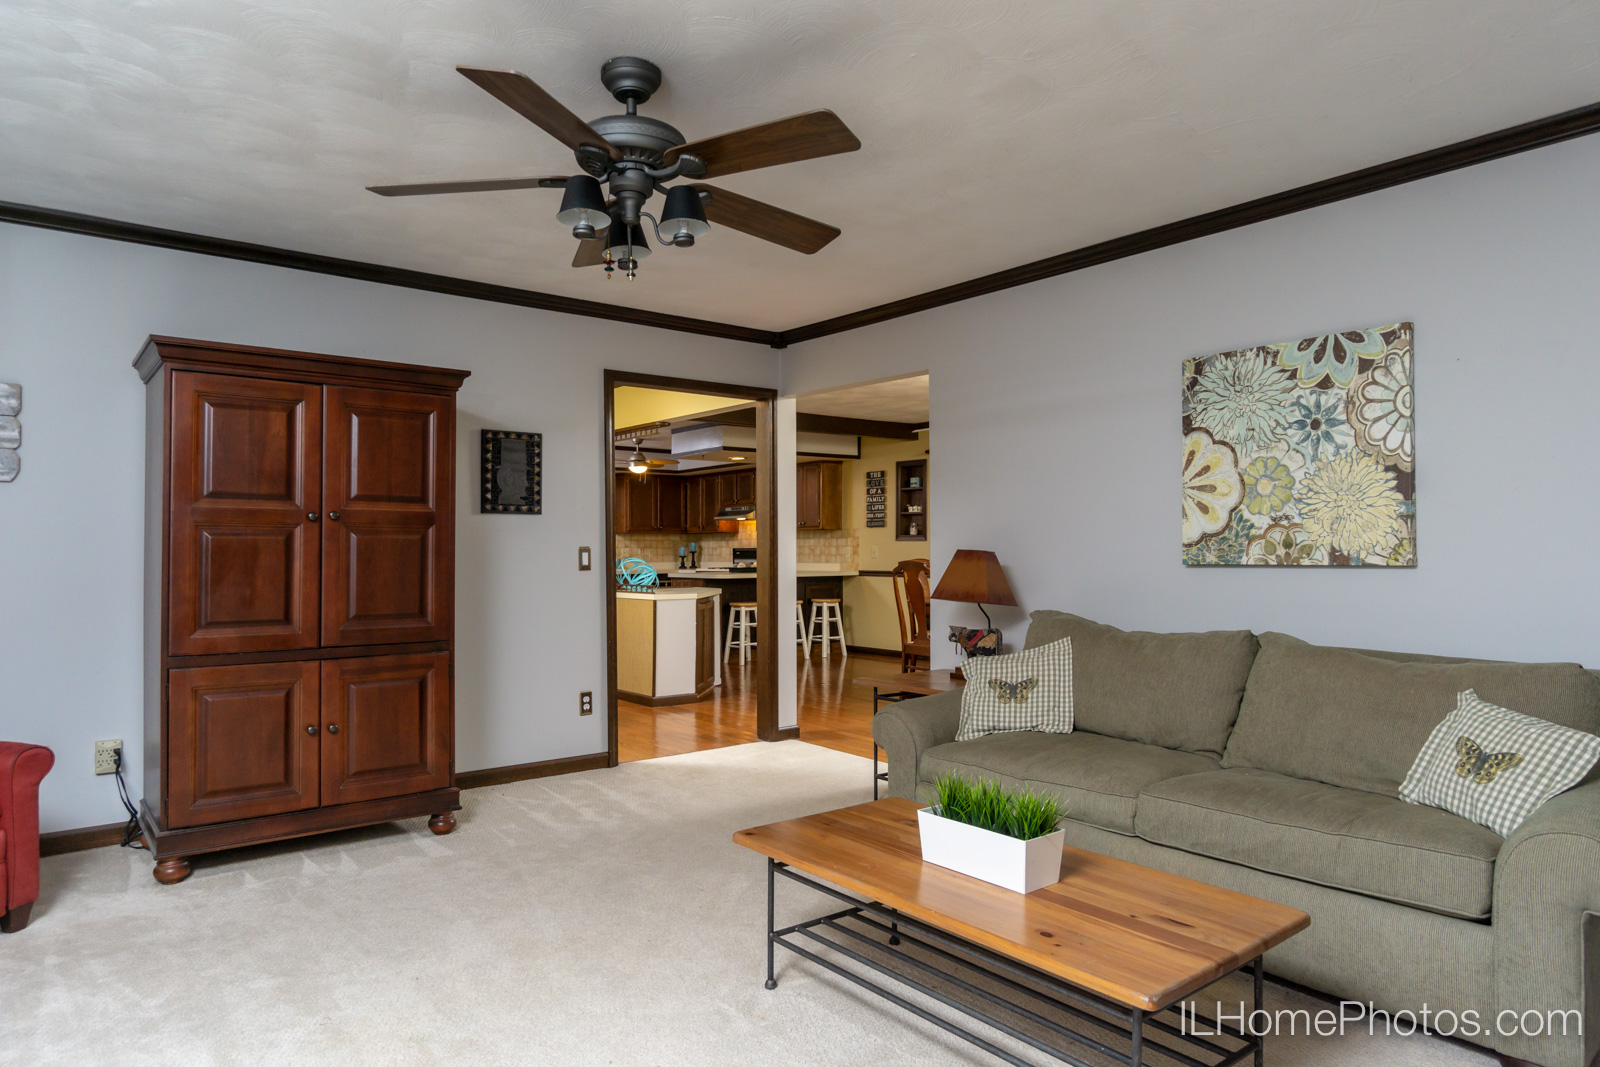 Interior living room photograph for real estate in Sherman, IL :: Illinois Home Photography by Michael Gowin, Lincoln, IL